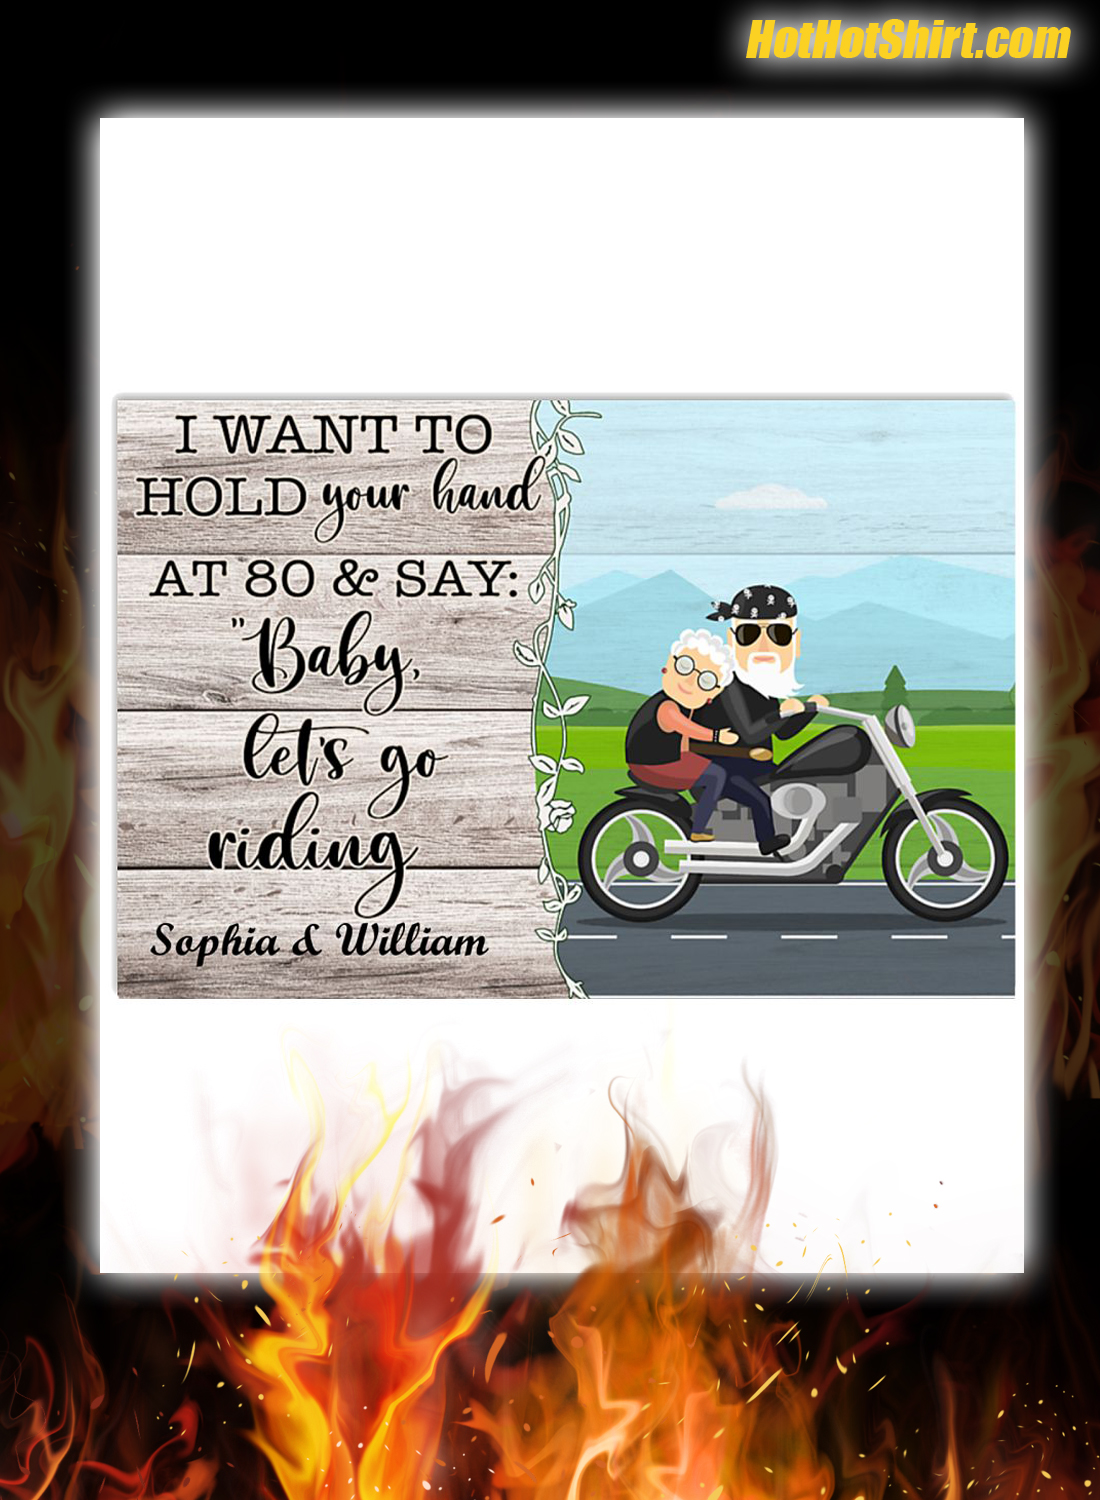 Personalized I Want To Hold Your Hand At 80 And Say Baby Let Go Riding Poster